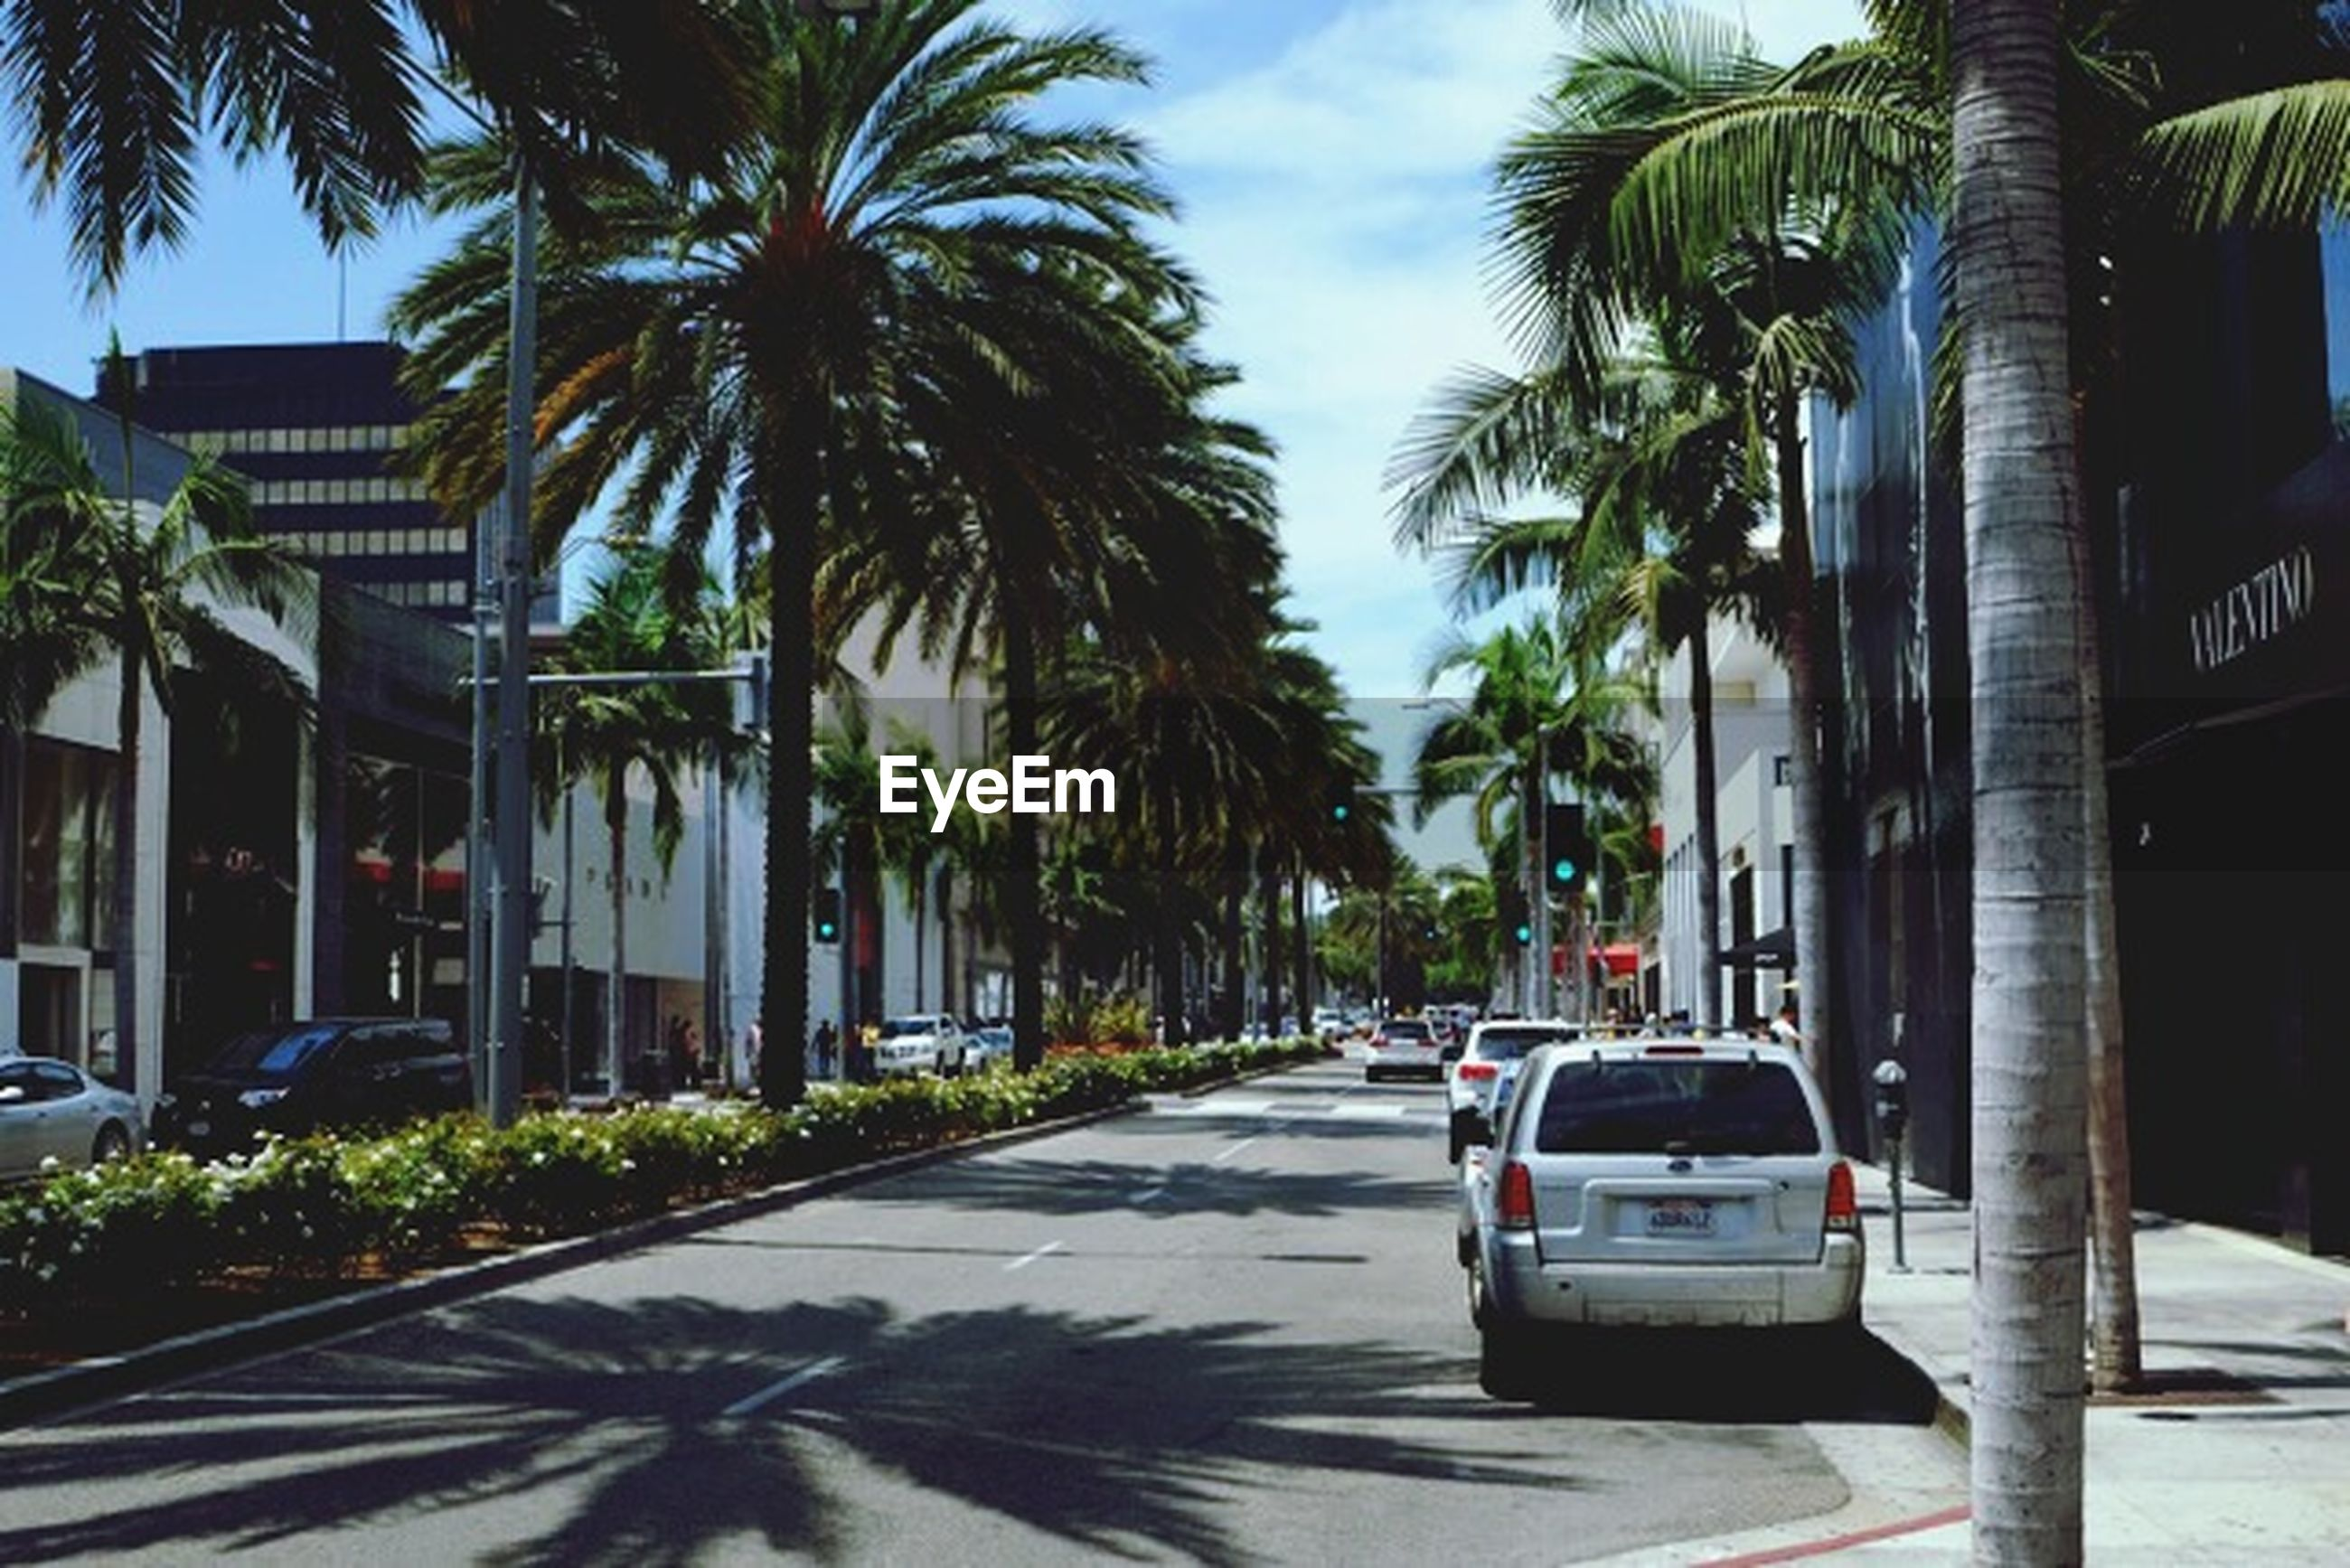 palm tree, tree, building exterior, architecture, built structure, street, transportation, the way forward, car, road, sunlight, city, sky, land vehicle, mode of transport, incidental people, shadow, tree trunk, day, outdoors